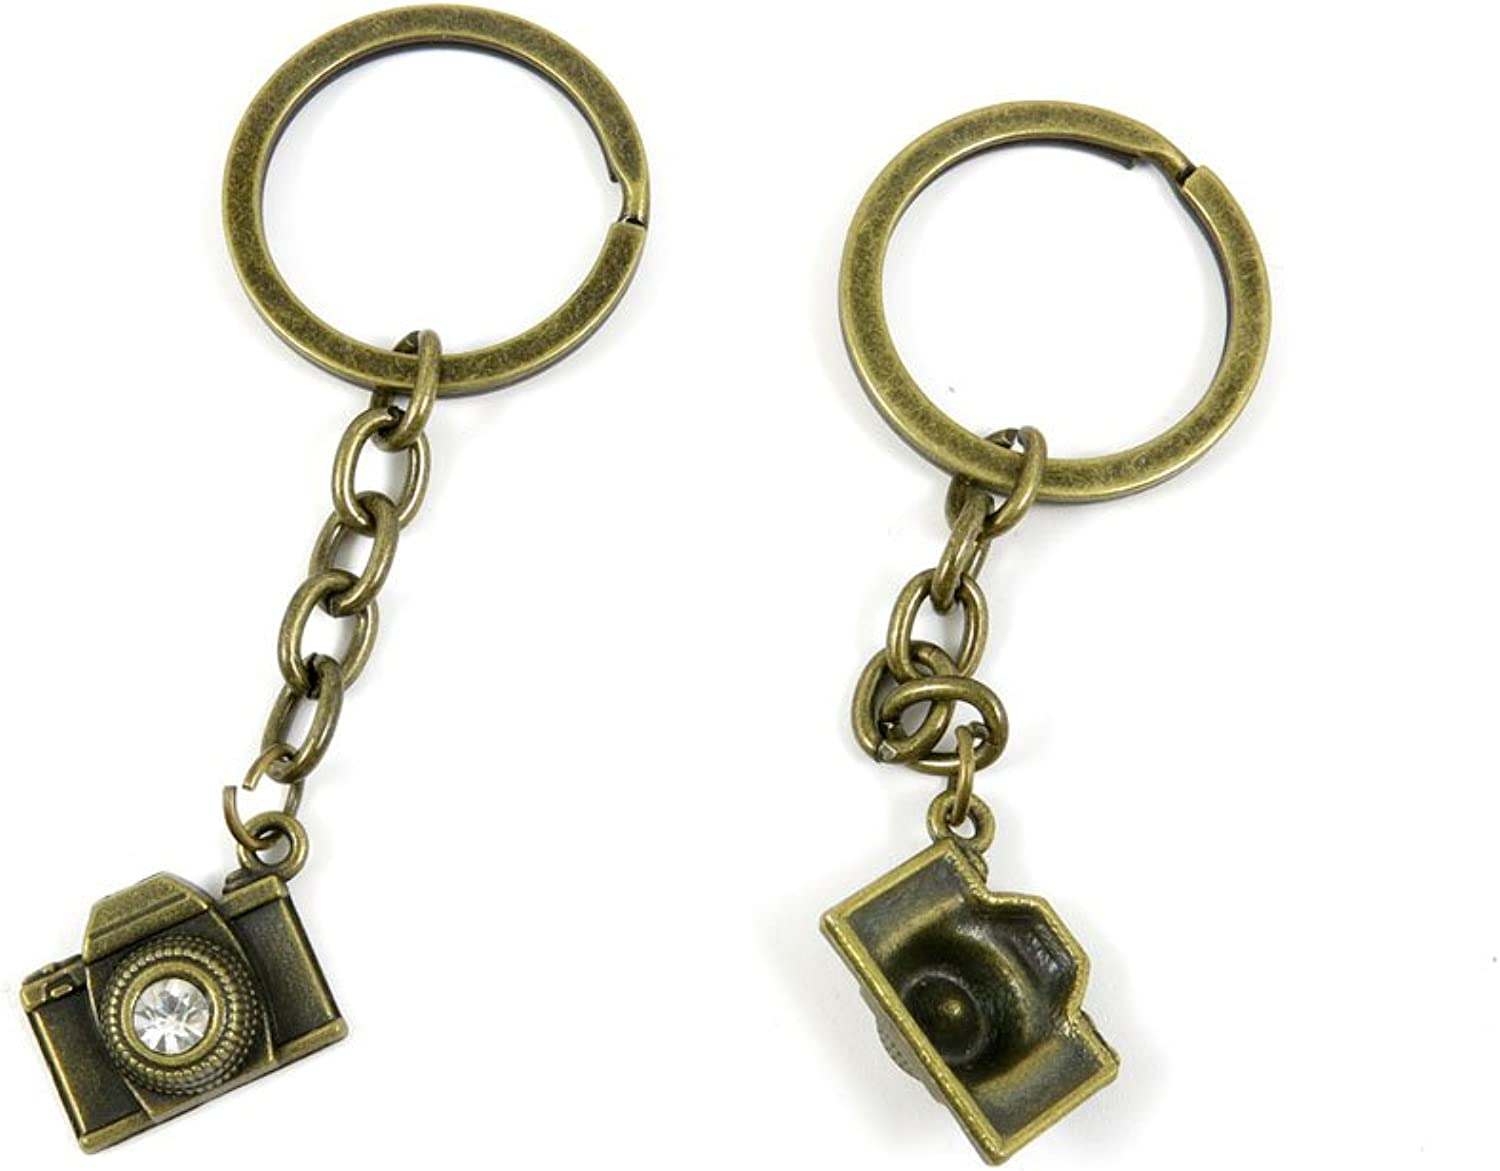 100 PCS Keyrings Keychains Key Ring Chains Tags Jewelry Findings Clasps Buckles Supplies H6TB7 Camera